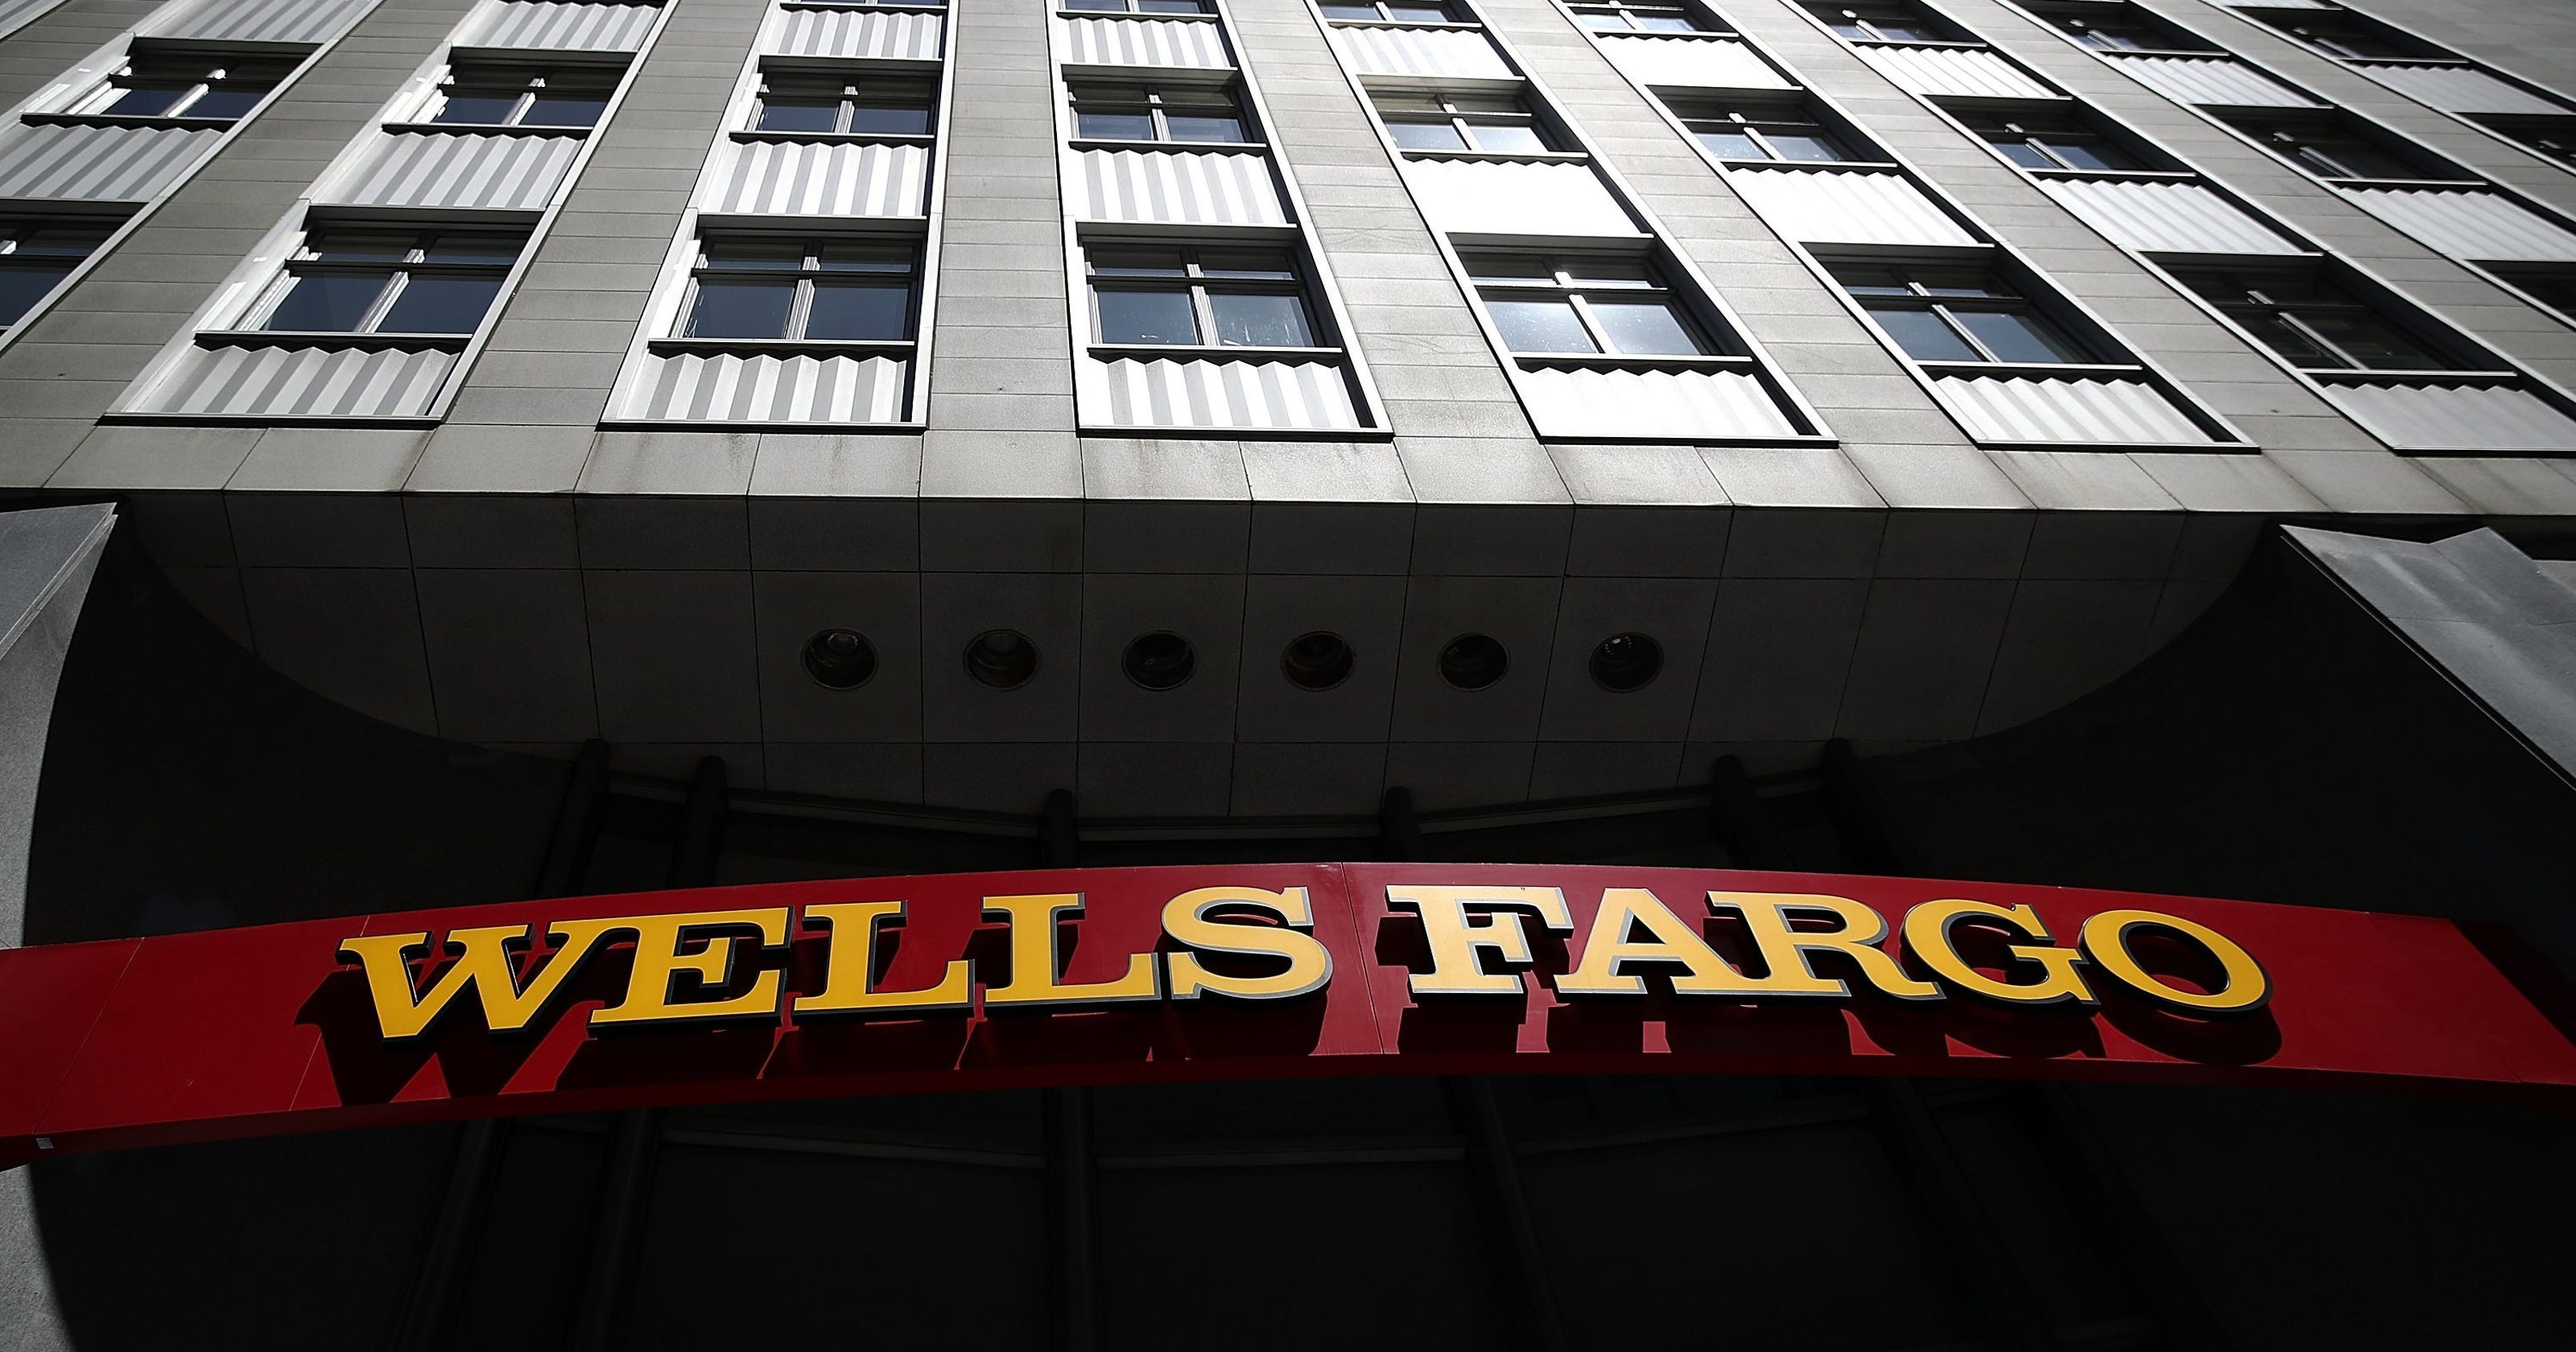 Wells Fargo loses teachers union AFT over ties to NRA, guns